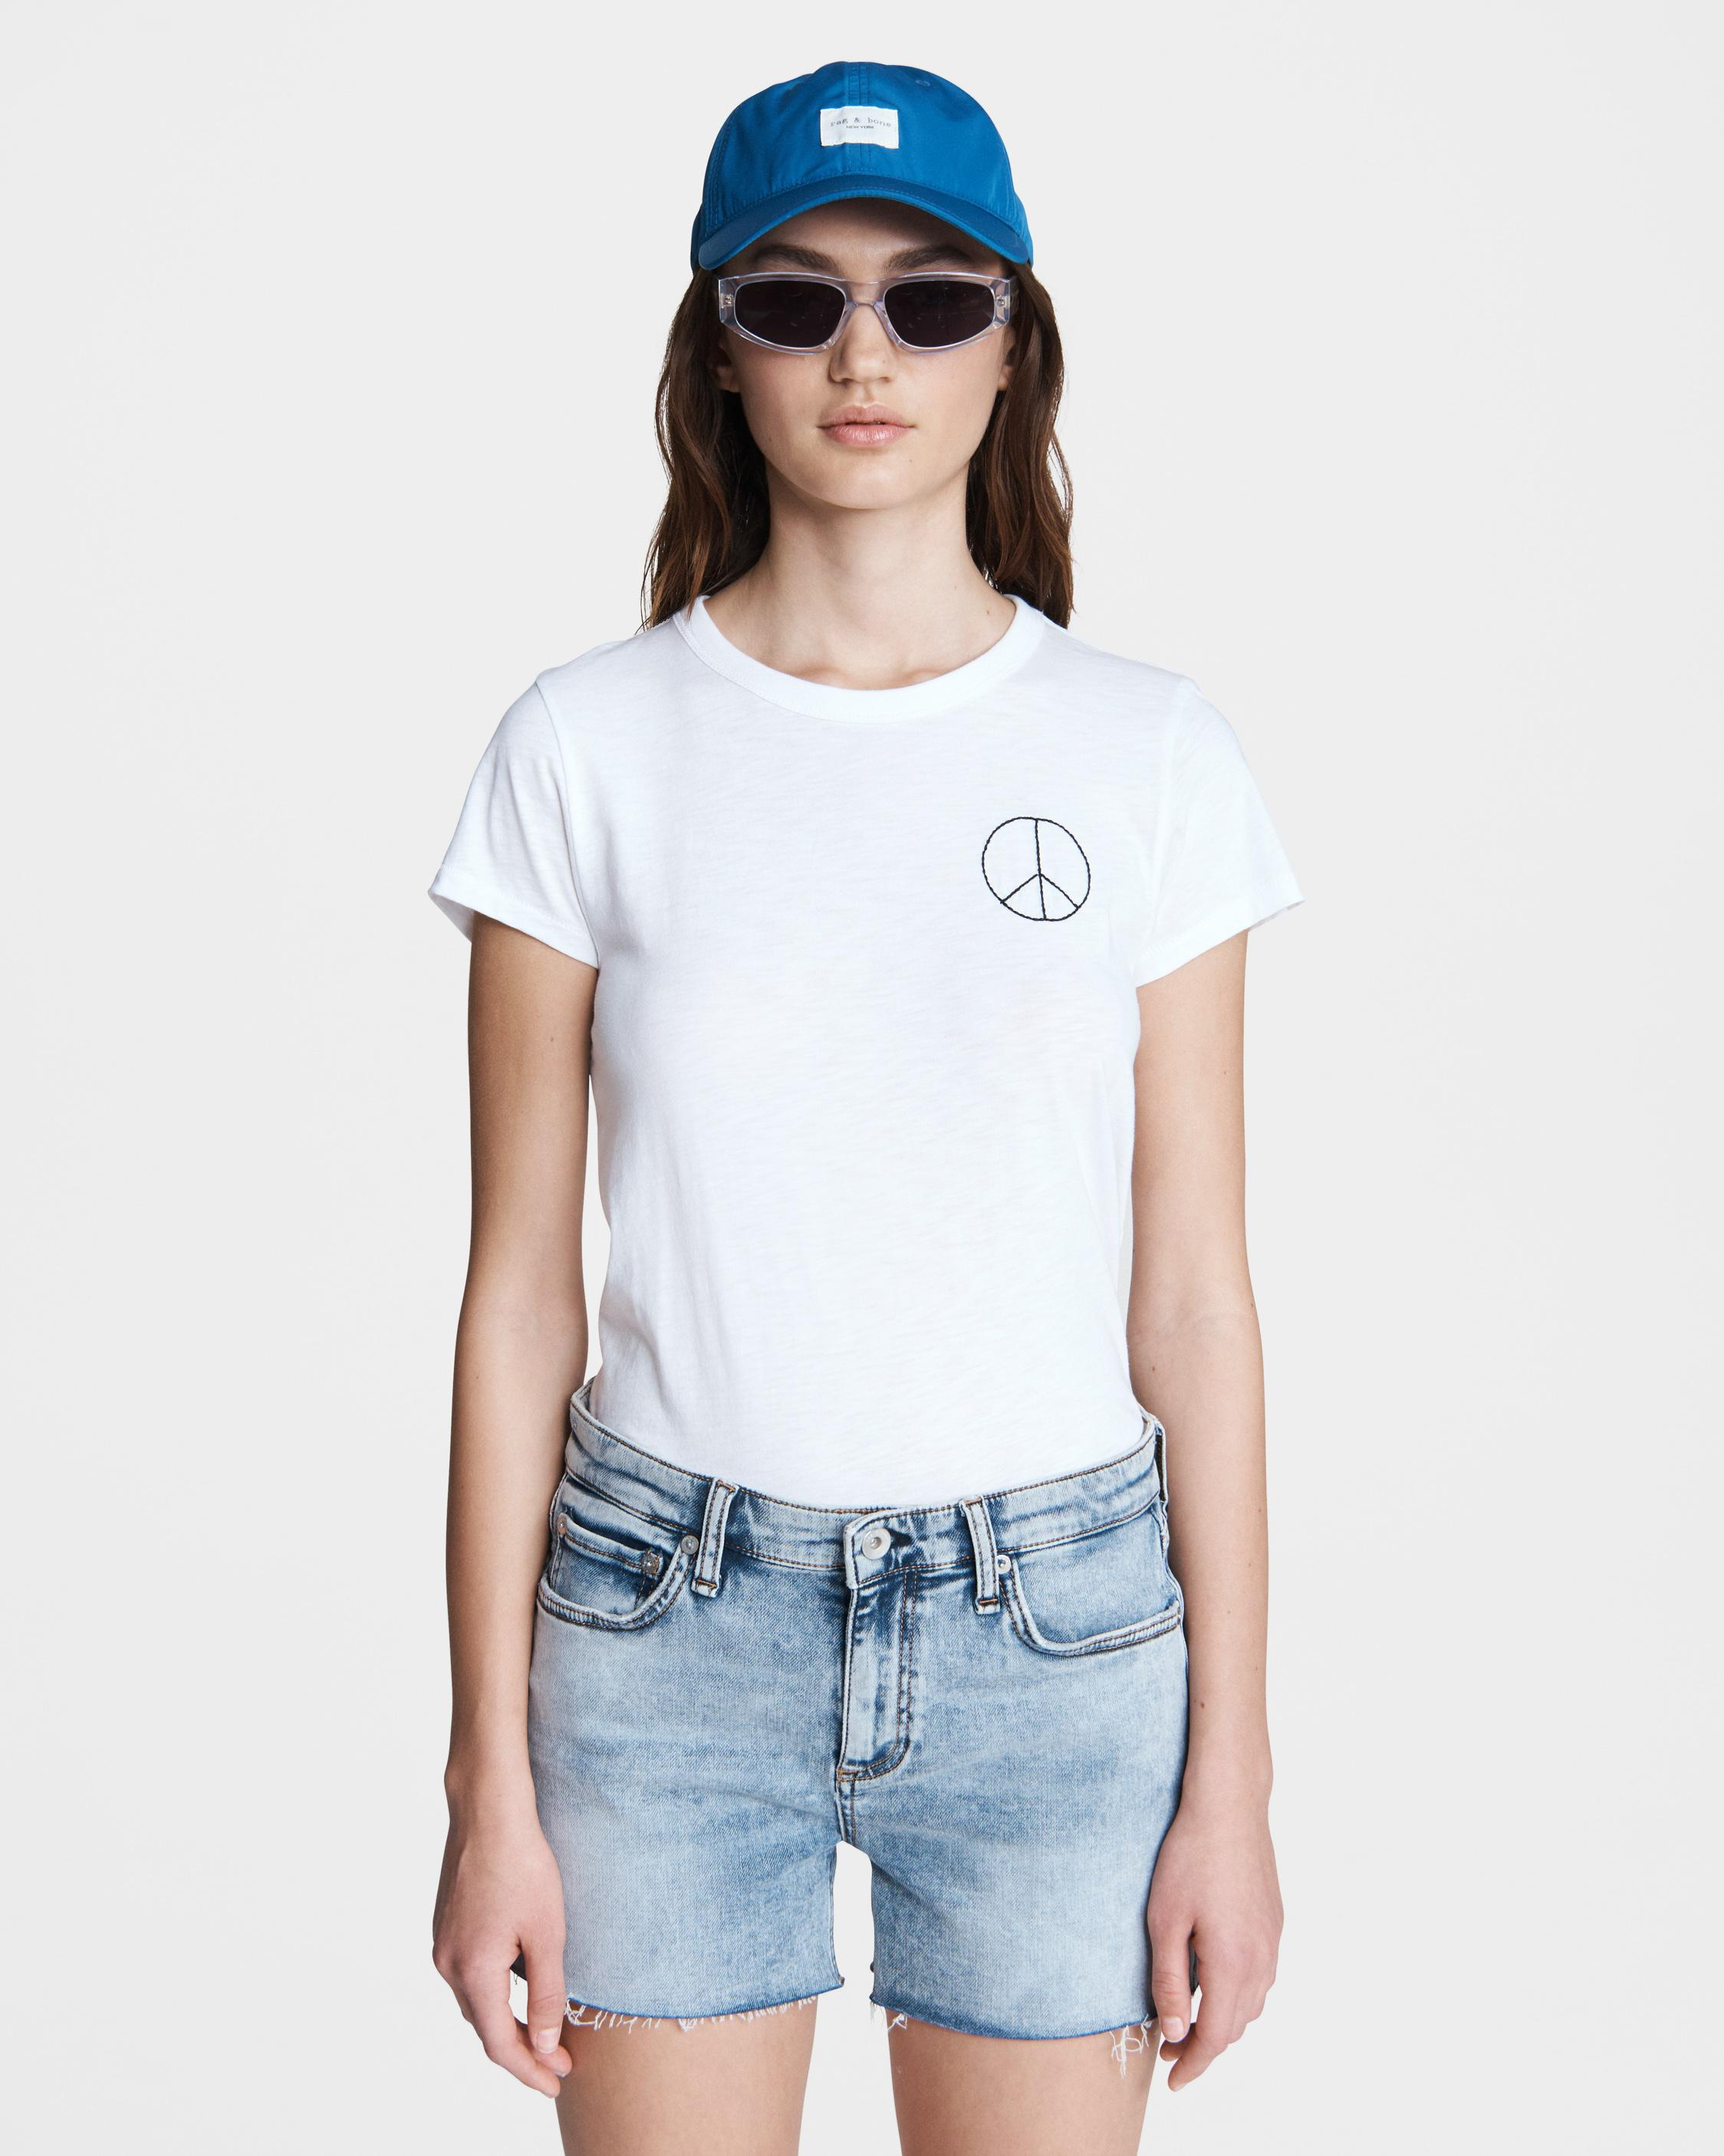 Peace sign cotton tee